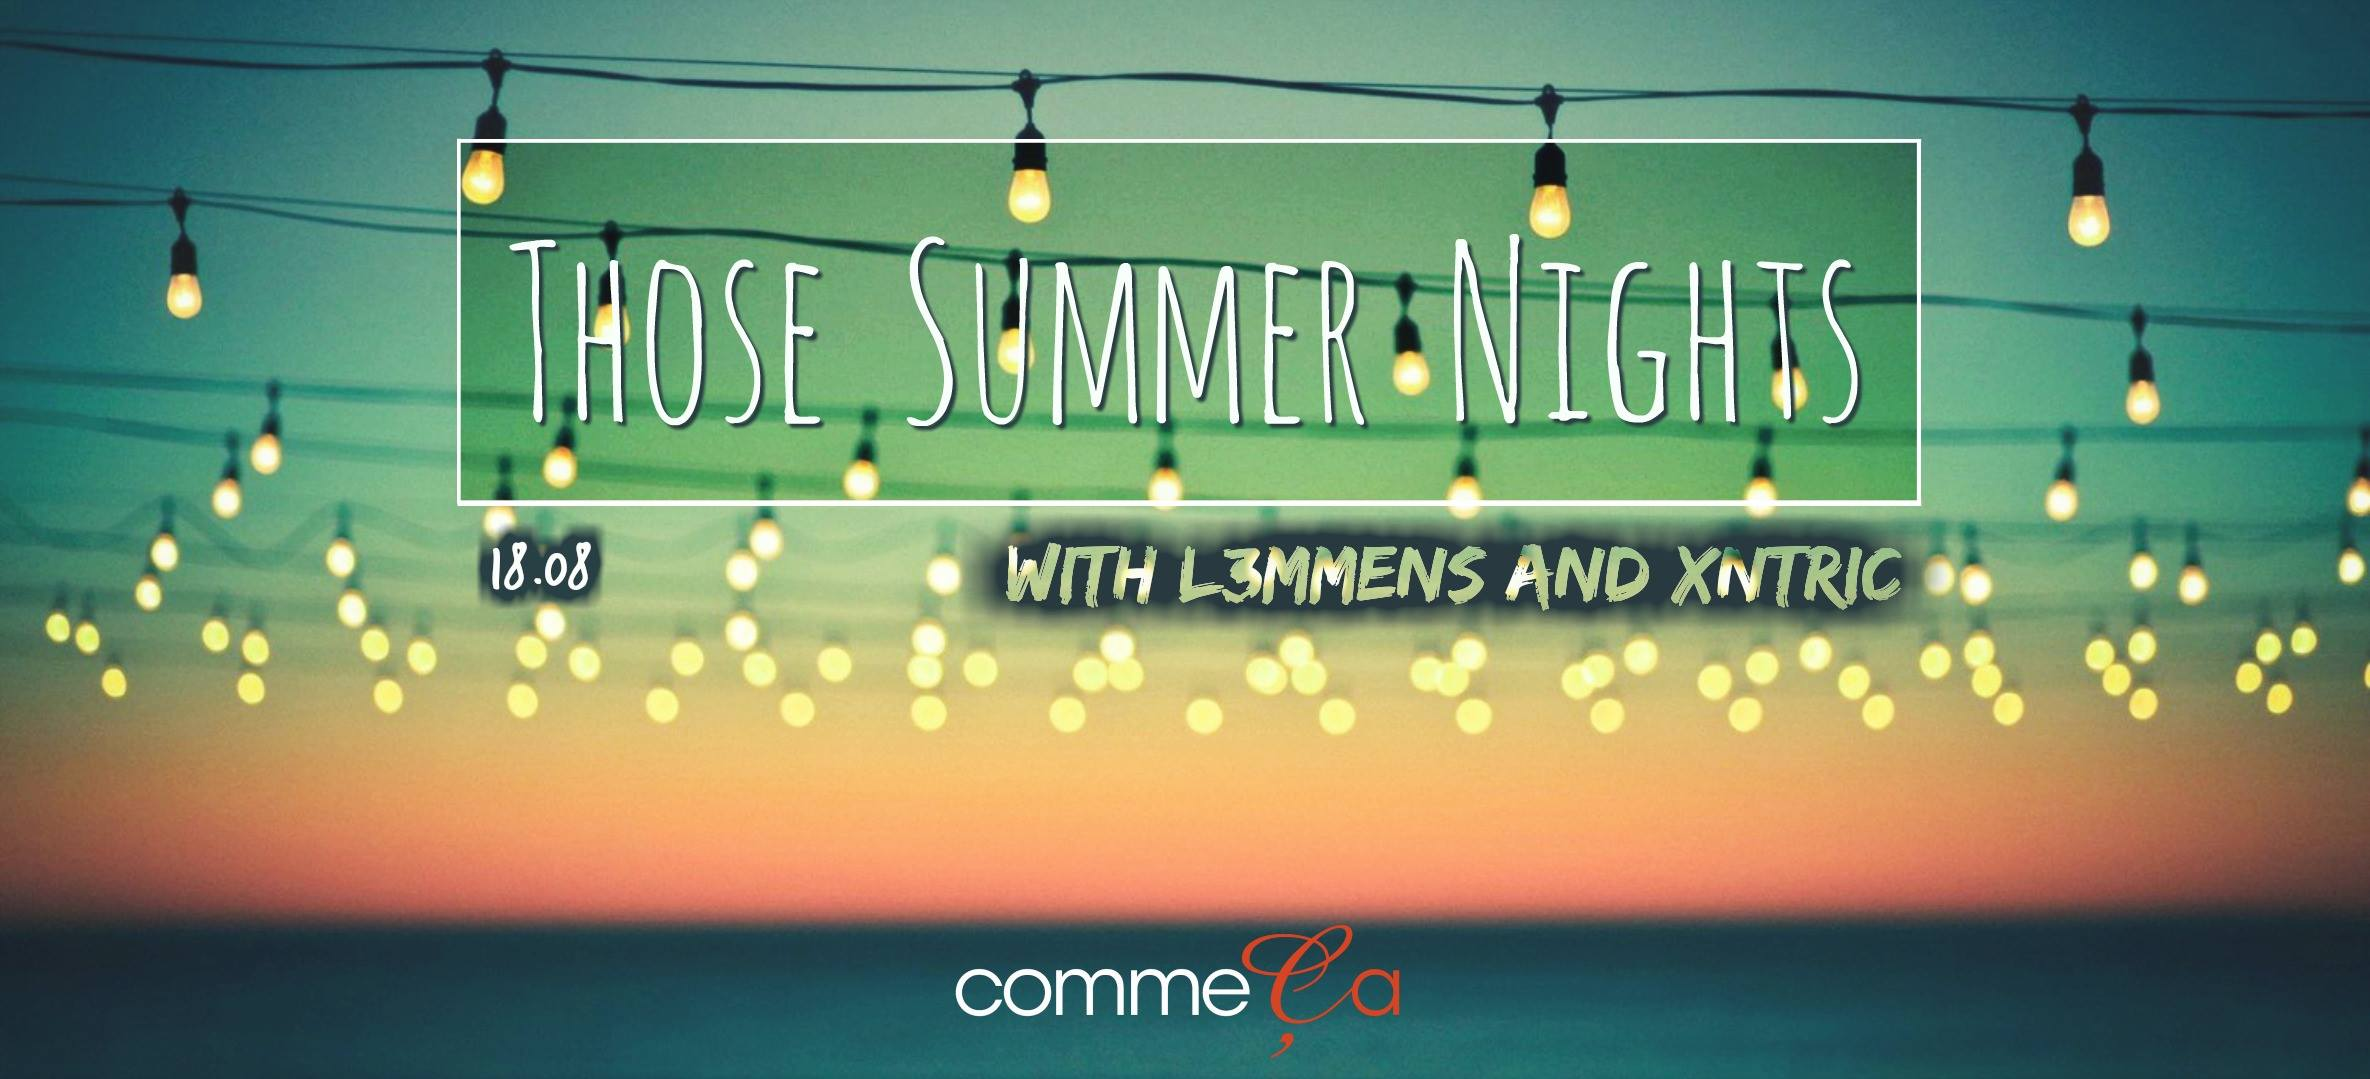 18 07 19 Those Summer Nights Comme ça Zaterdag 18 juli 2018